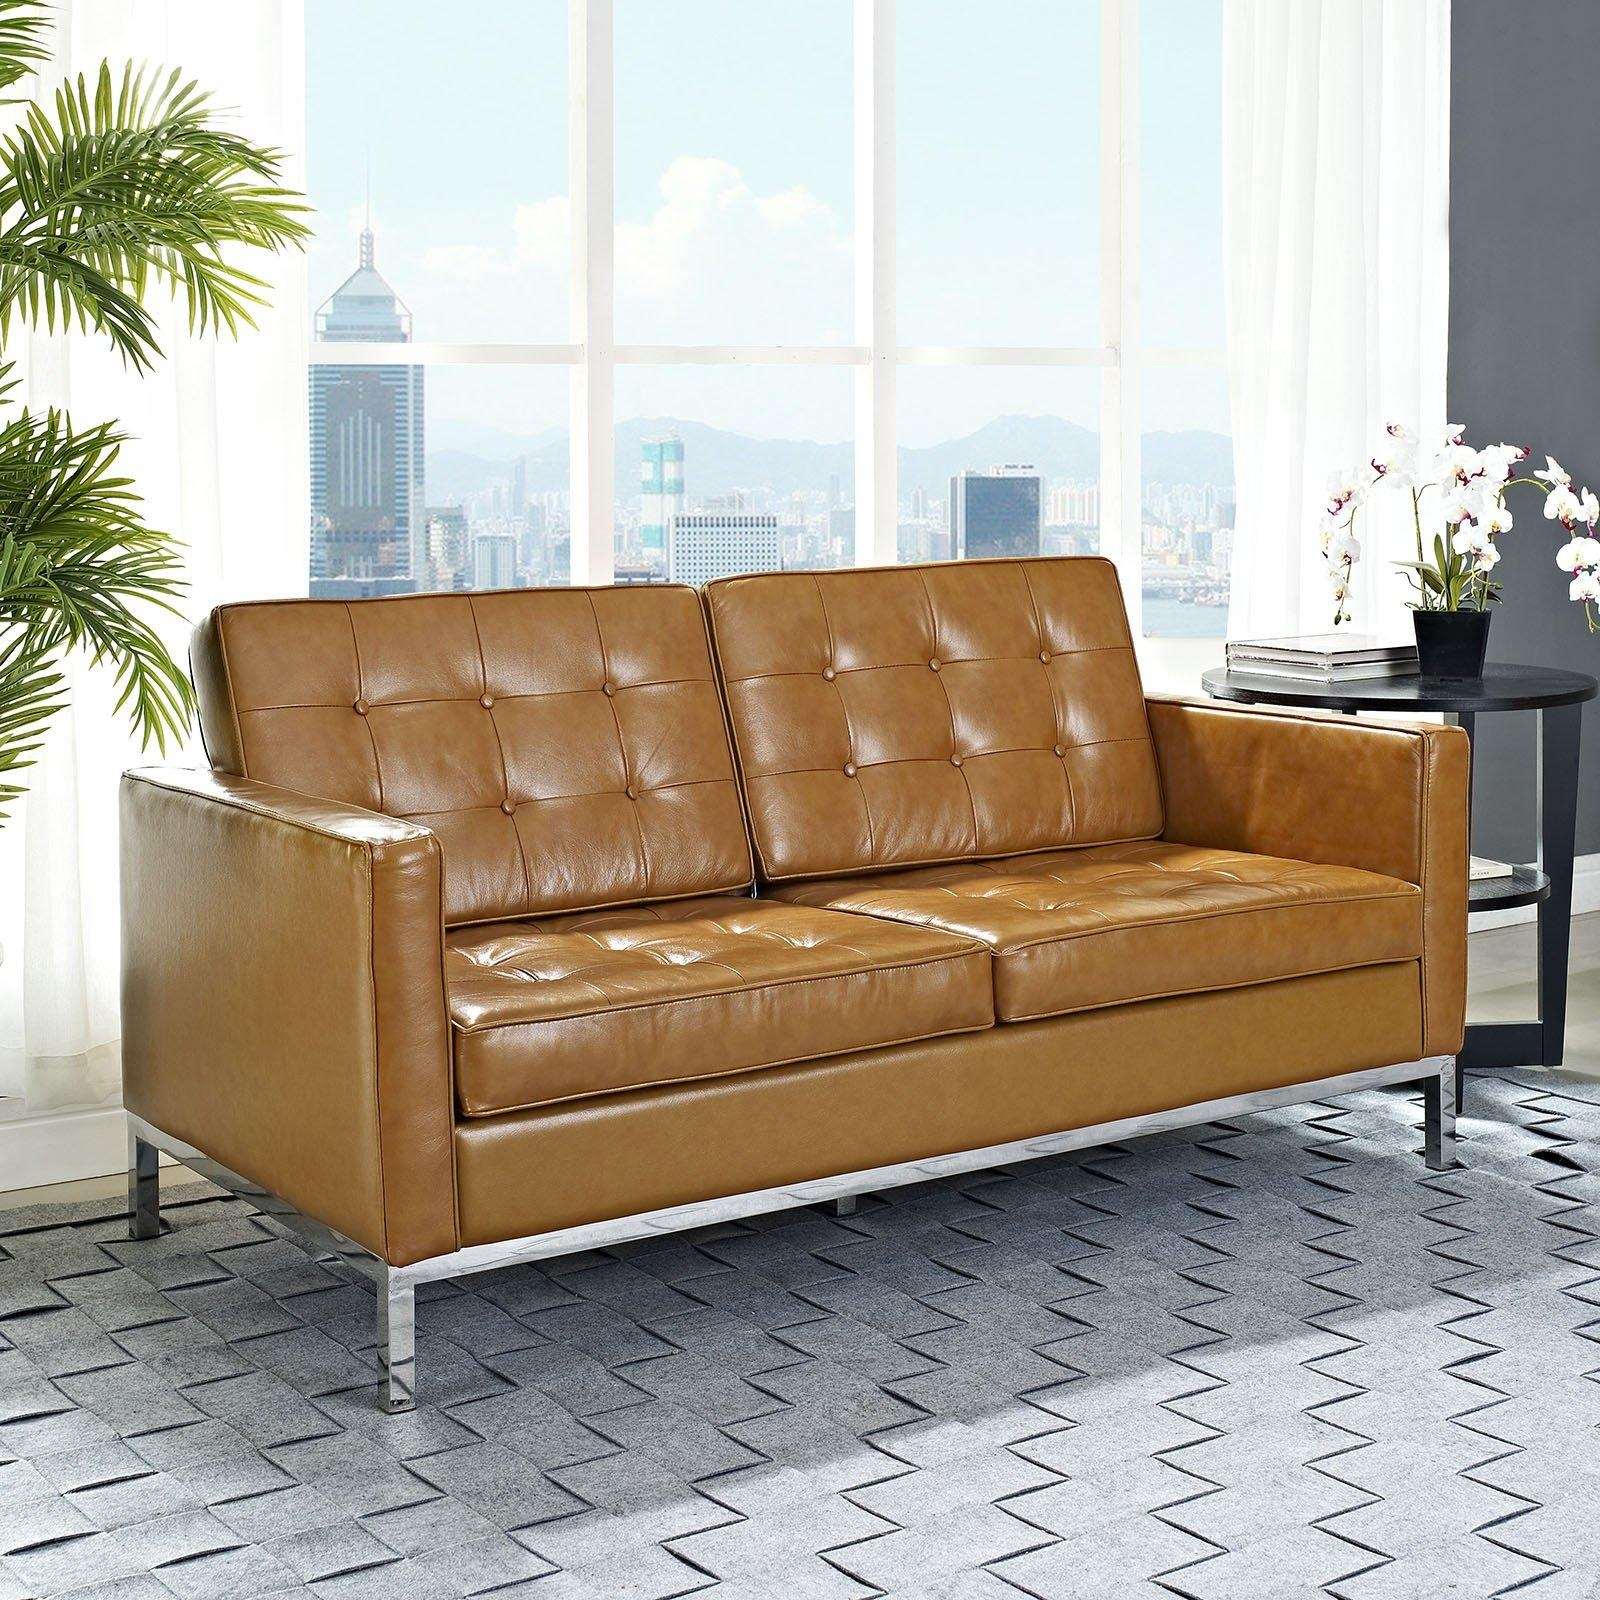 Knoll Leather Sofa – Leather Sectional Sofa Pertaining To Florence Knoll Leather Sofas (Image 18 of 20)